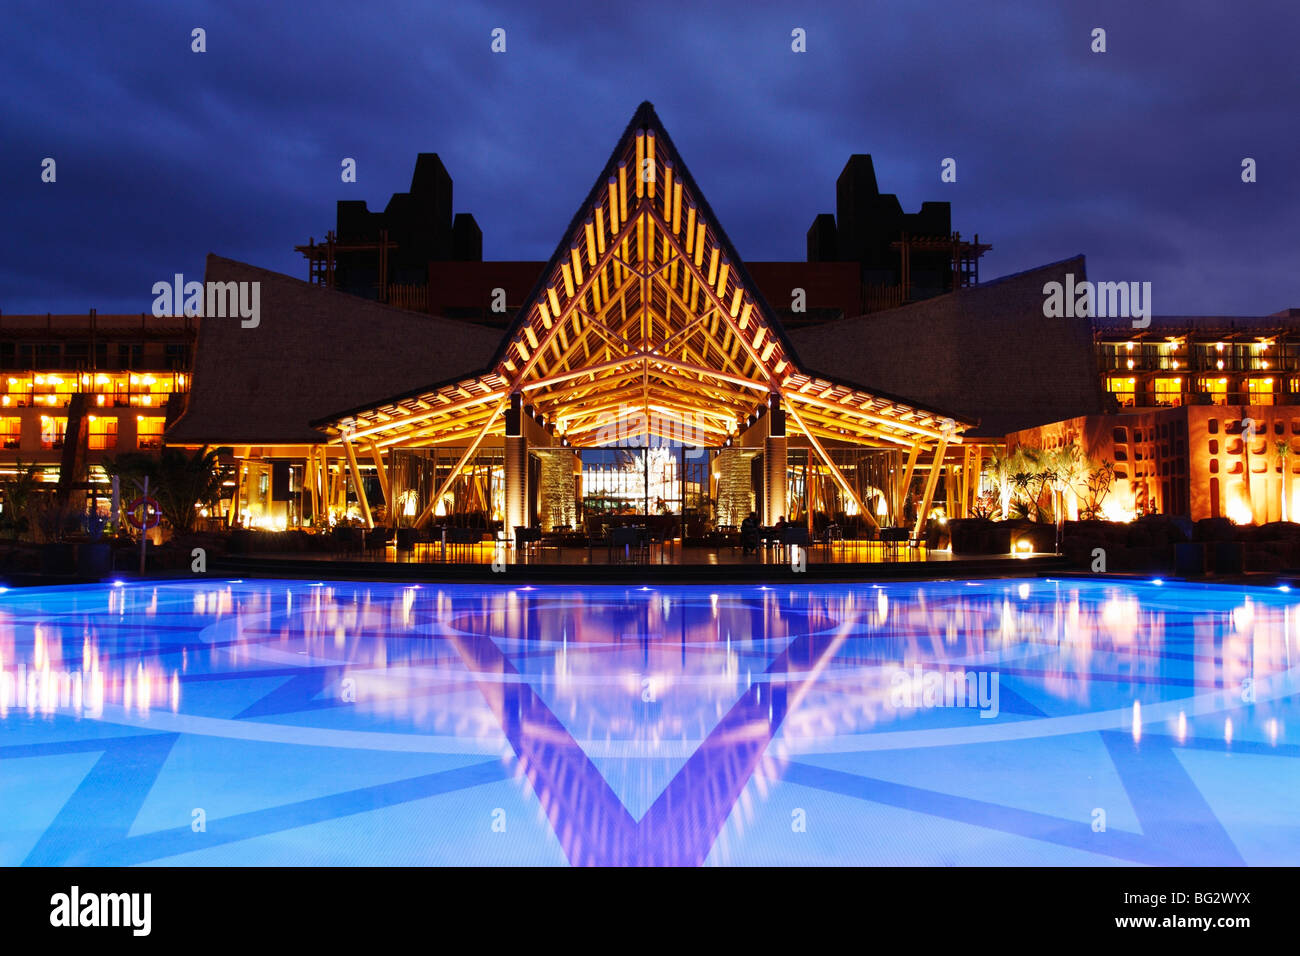 Luxury Resort Hotels Canary Islands